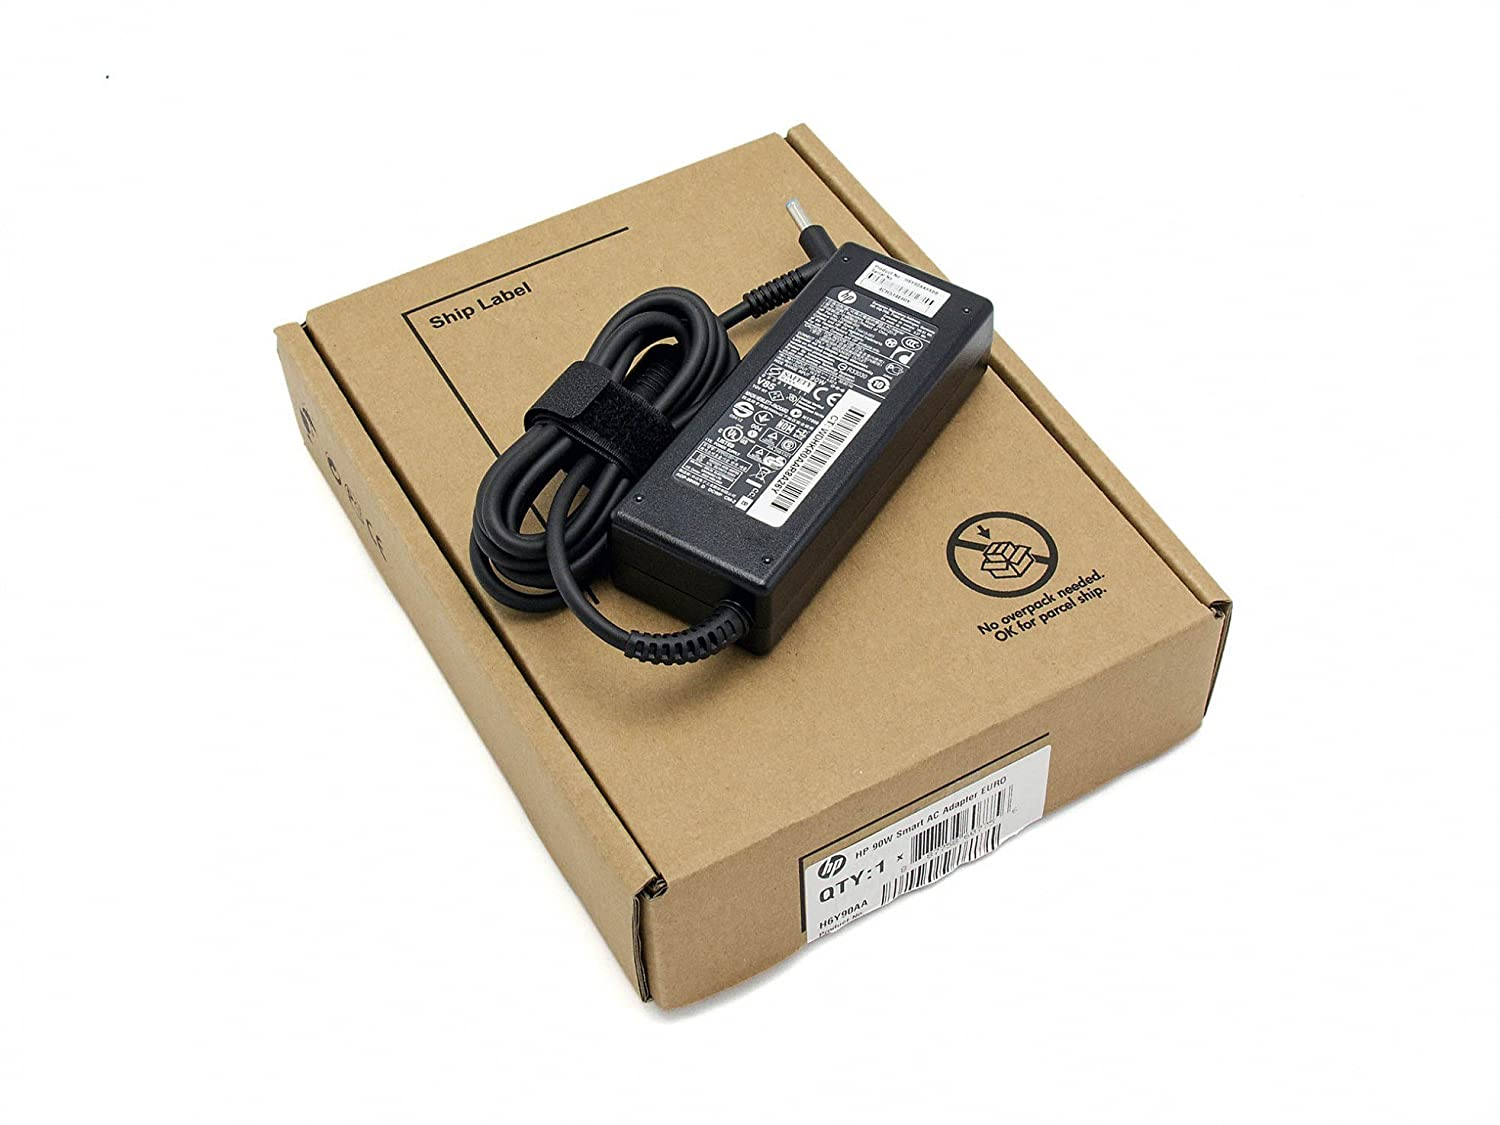 Hewlett Packard 710413-001 power supply - 90 Watt